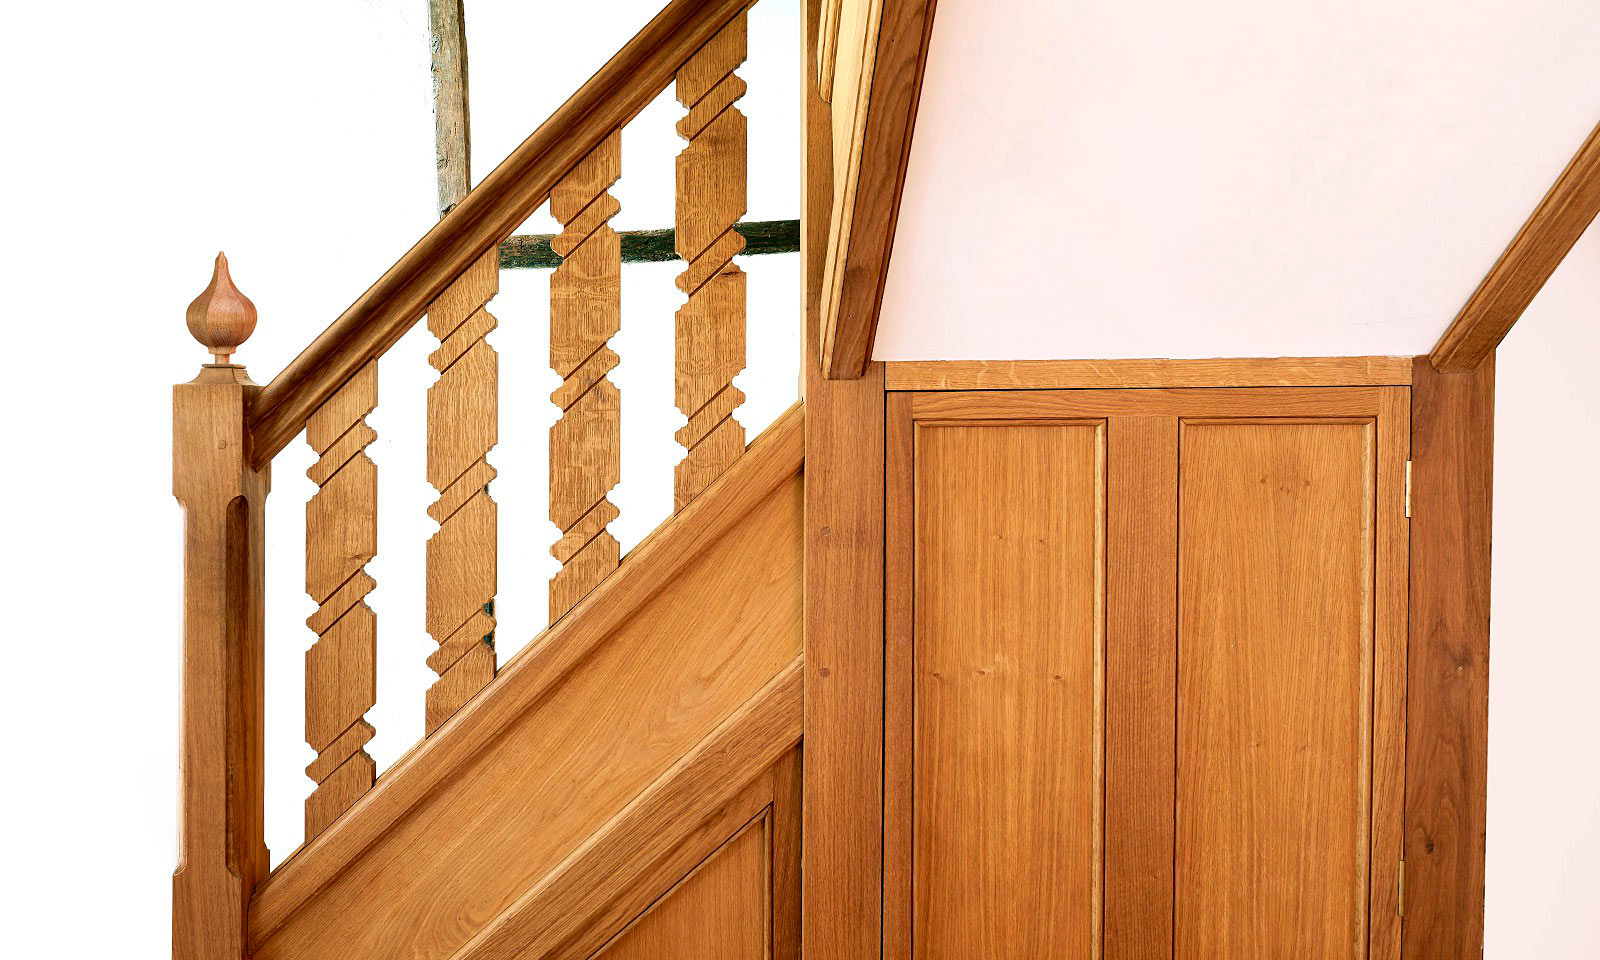 Gothic Staircase. Bespoke, custom made, hand-crafted, stairs, made using traditional techniques and manufactured out of solid European oak. Bespoke custom made joinery from Mounts Hill.